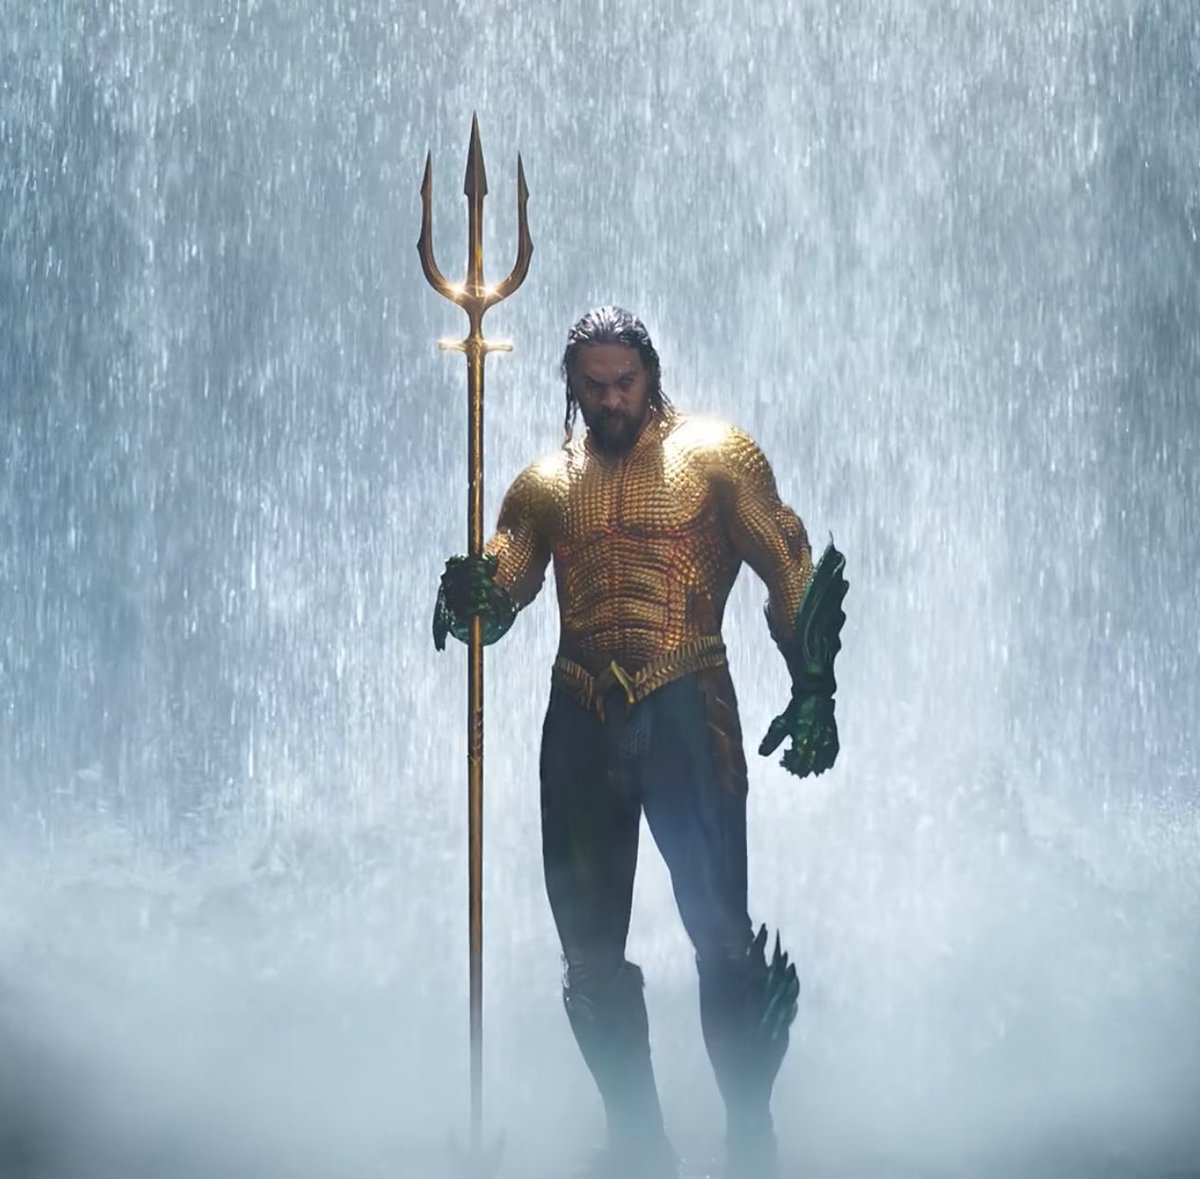 One variant of @FortniteGame Aquaman could look similar to this, image is from the movie immediately after Arthur Curry claims the trident and is proven to be the true King of Atlantis.  @StonewallTabor https://t.co/nsqIbyfNIU